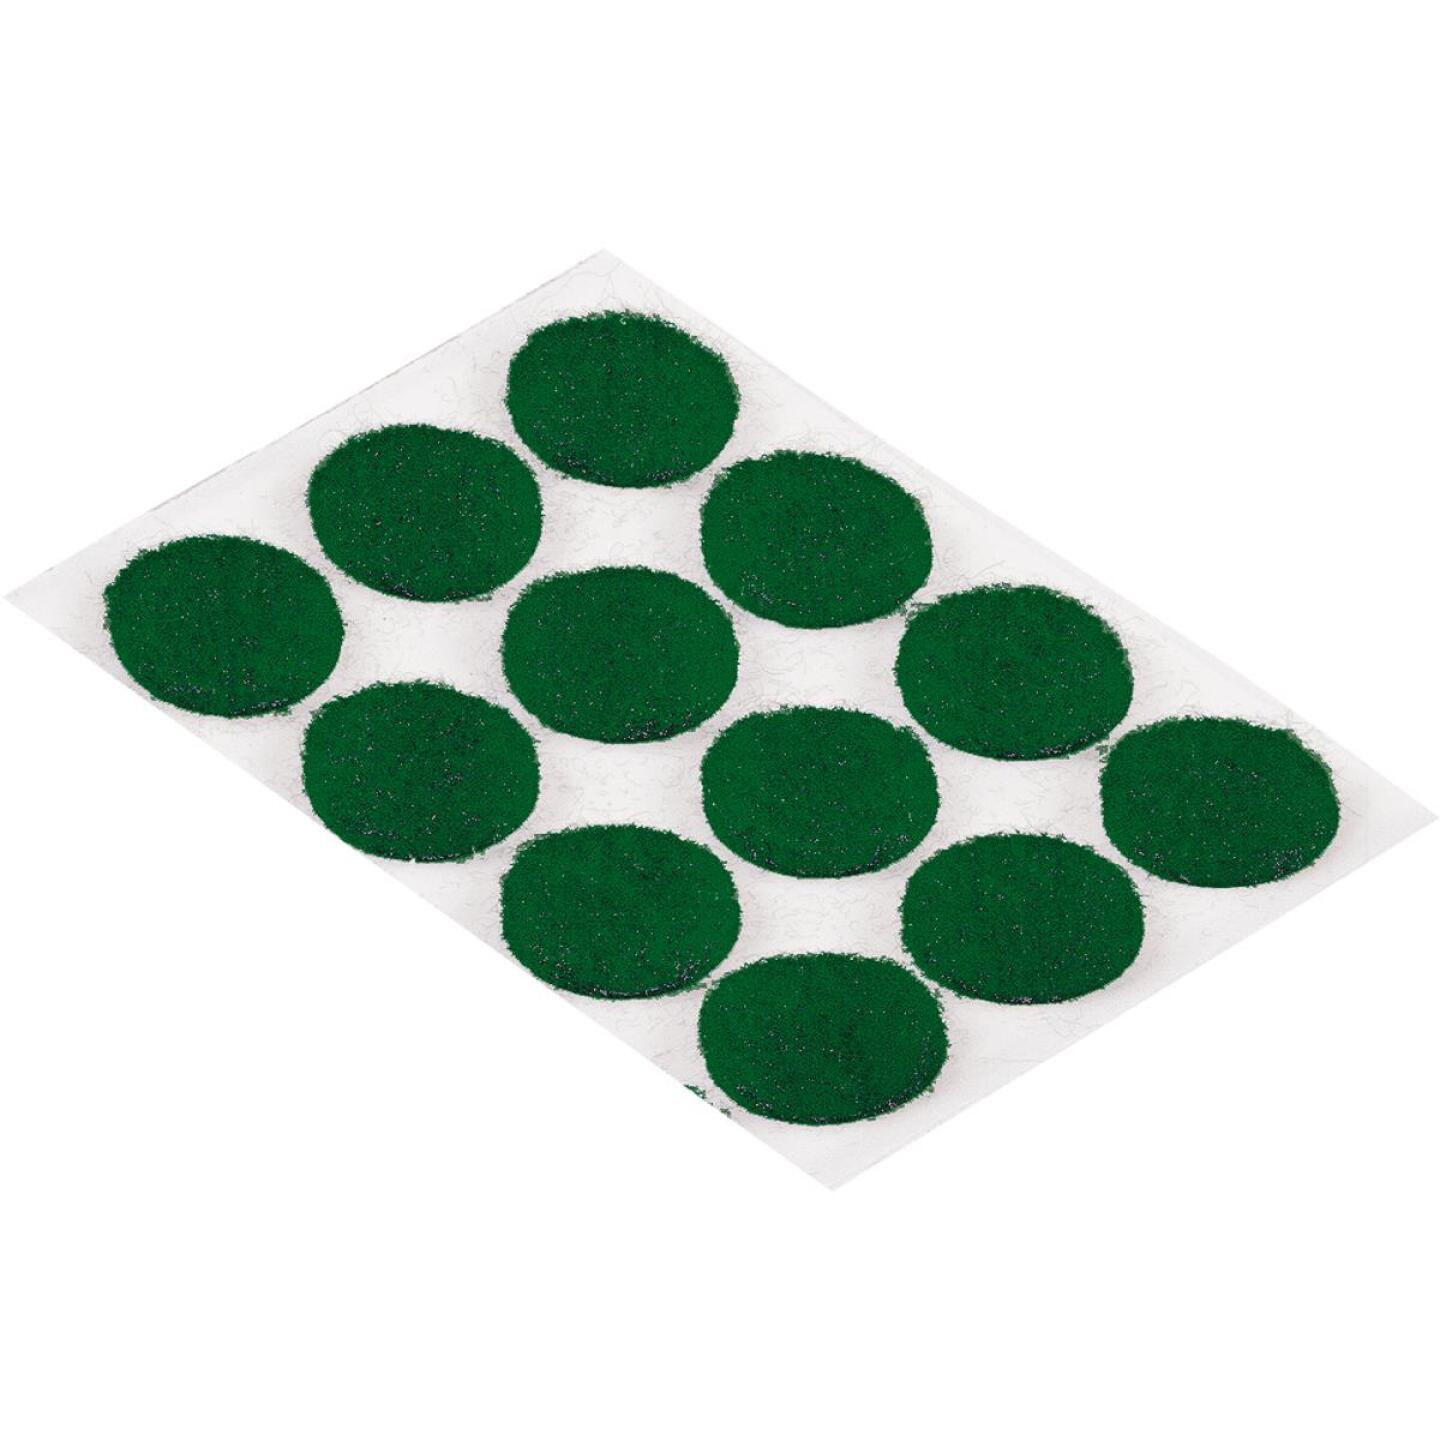 Do it 3/8 In. Green Self Adhesive Felt Pads,(28-Count) Image 1